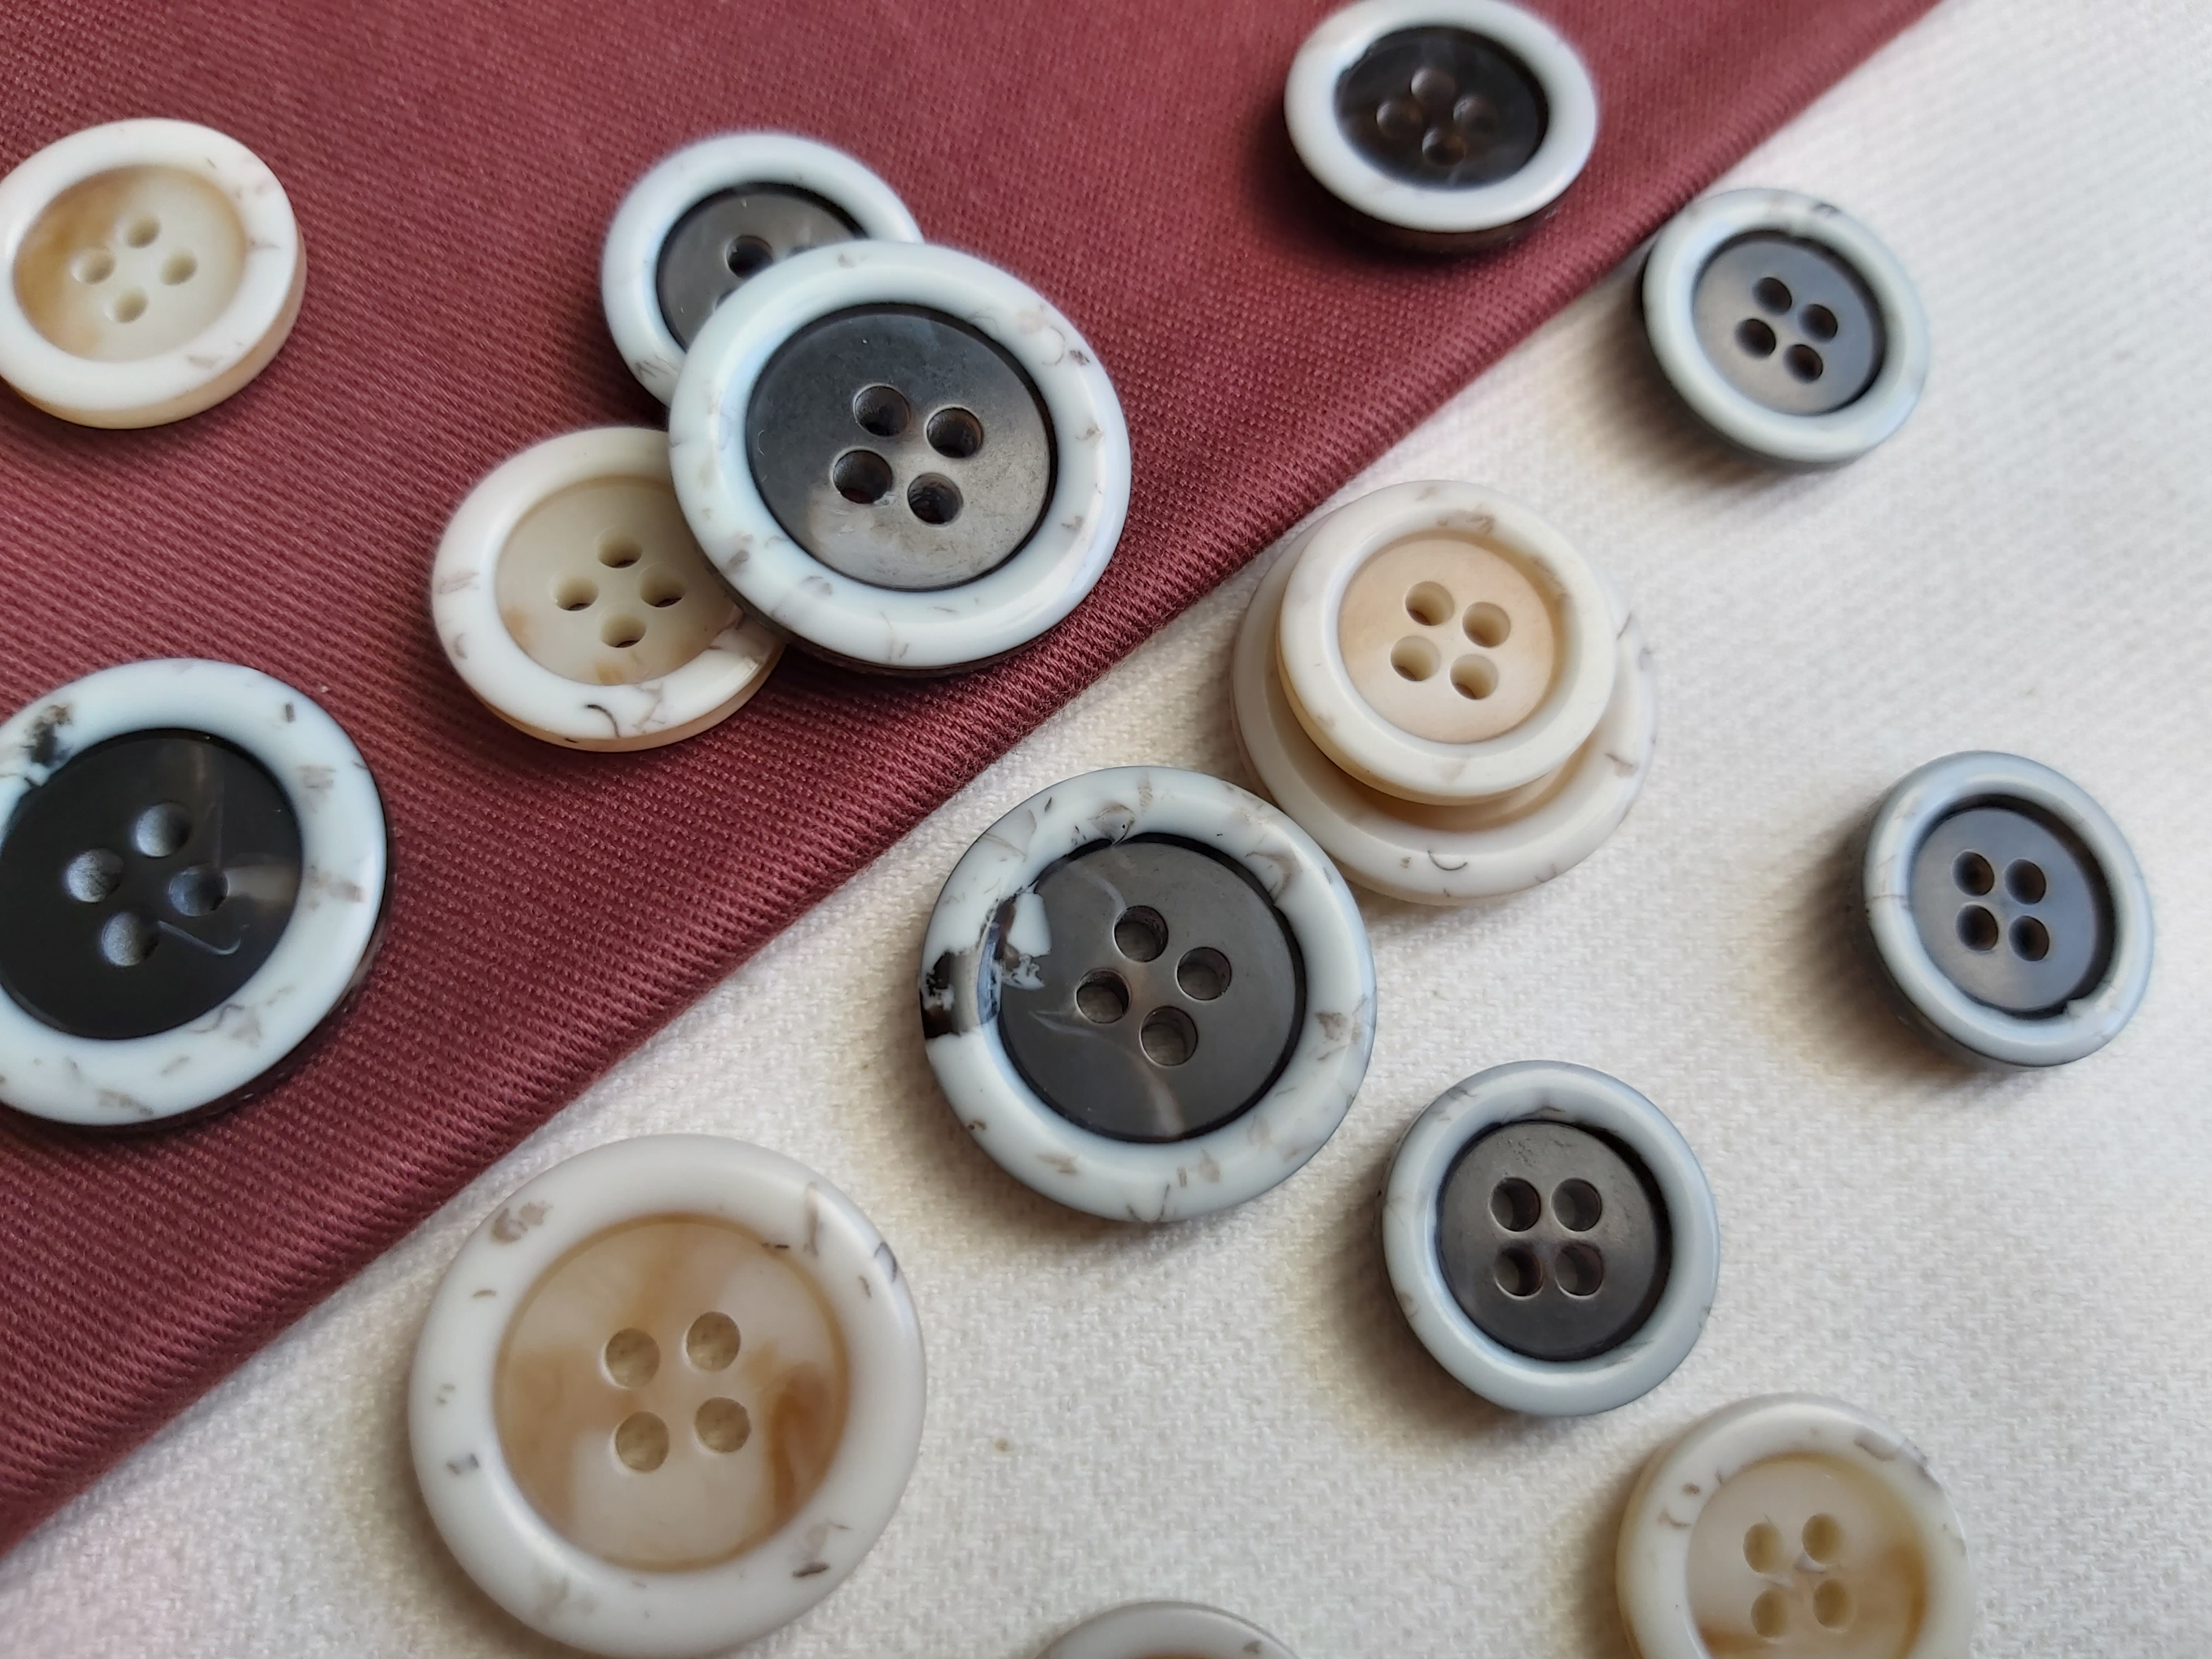 reeco buttons recycled polyester cabosa group sustainable material buttons factory global recycled standard